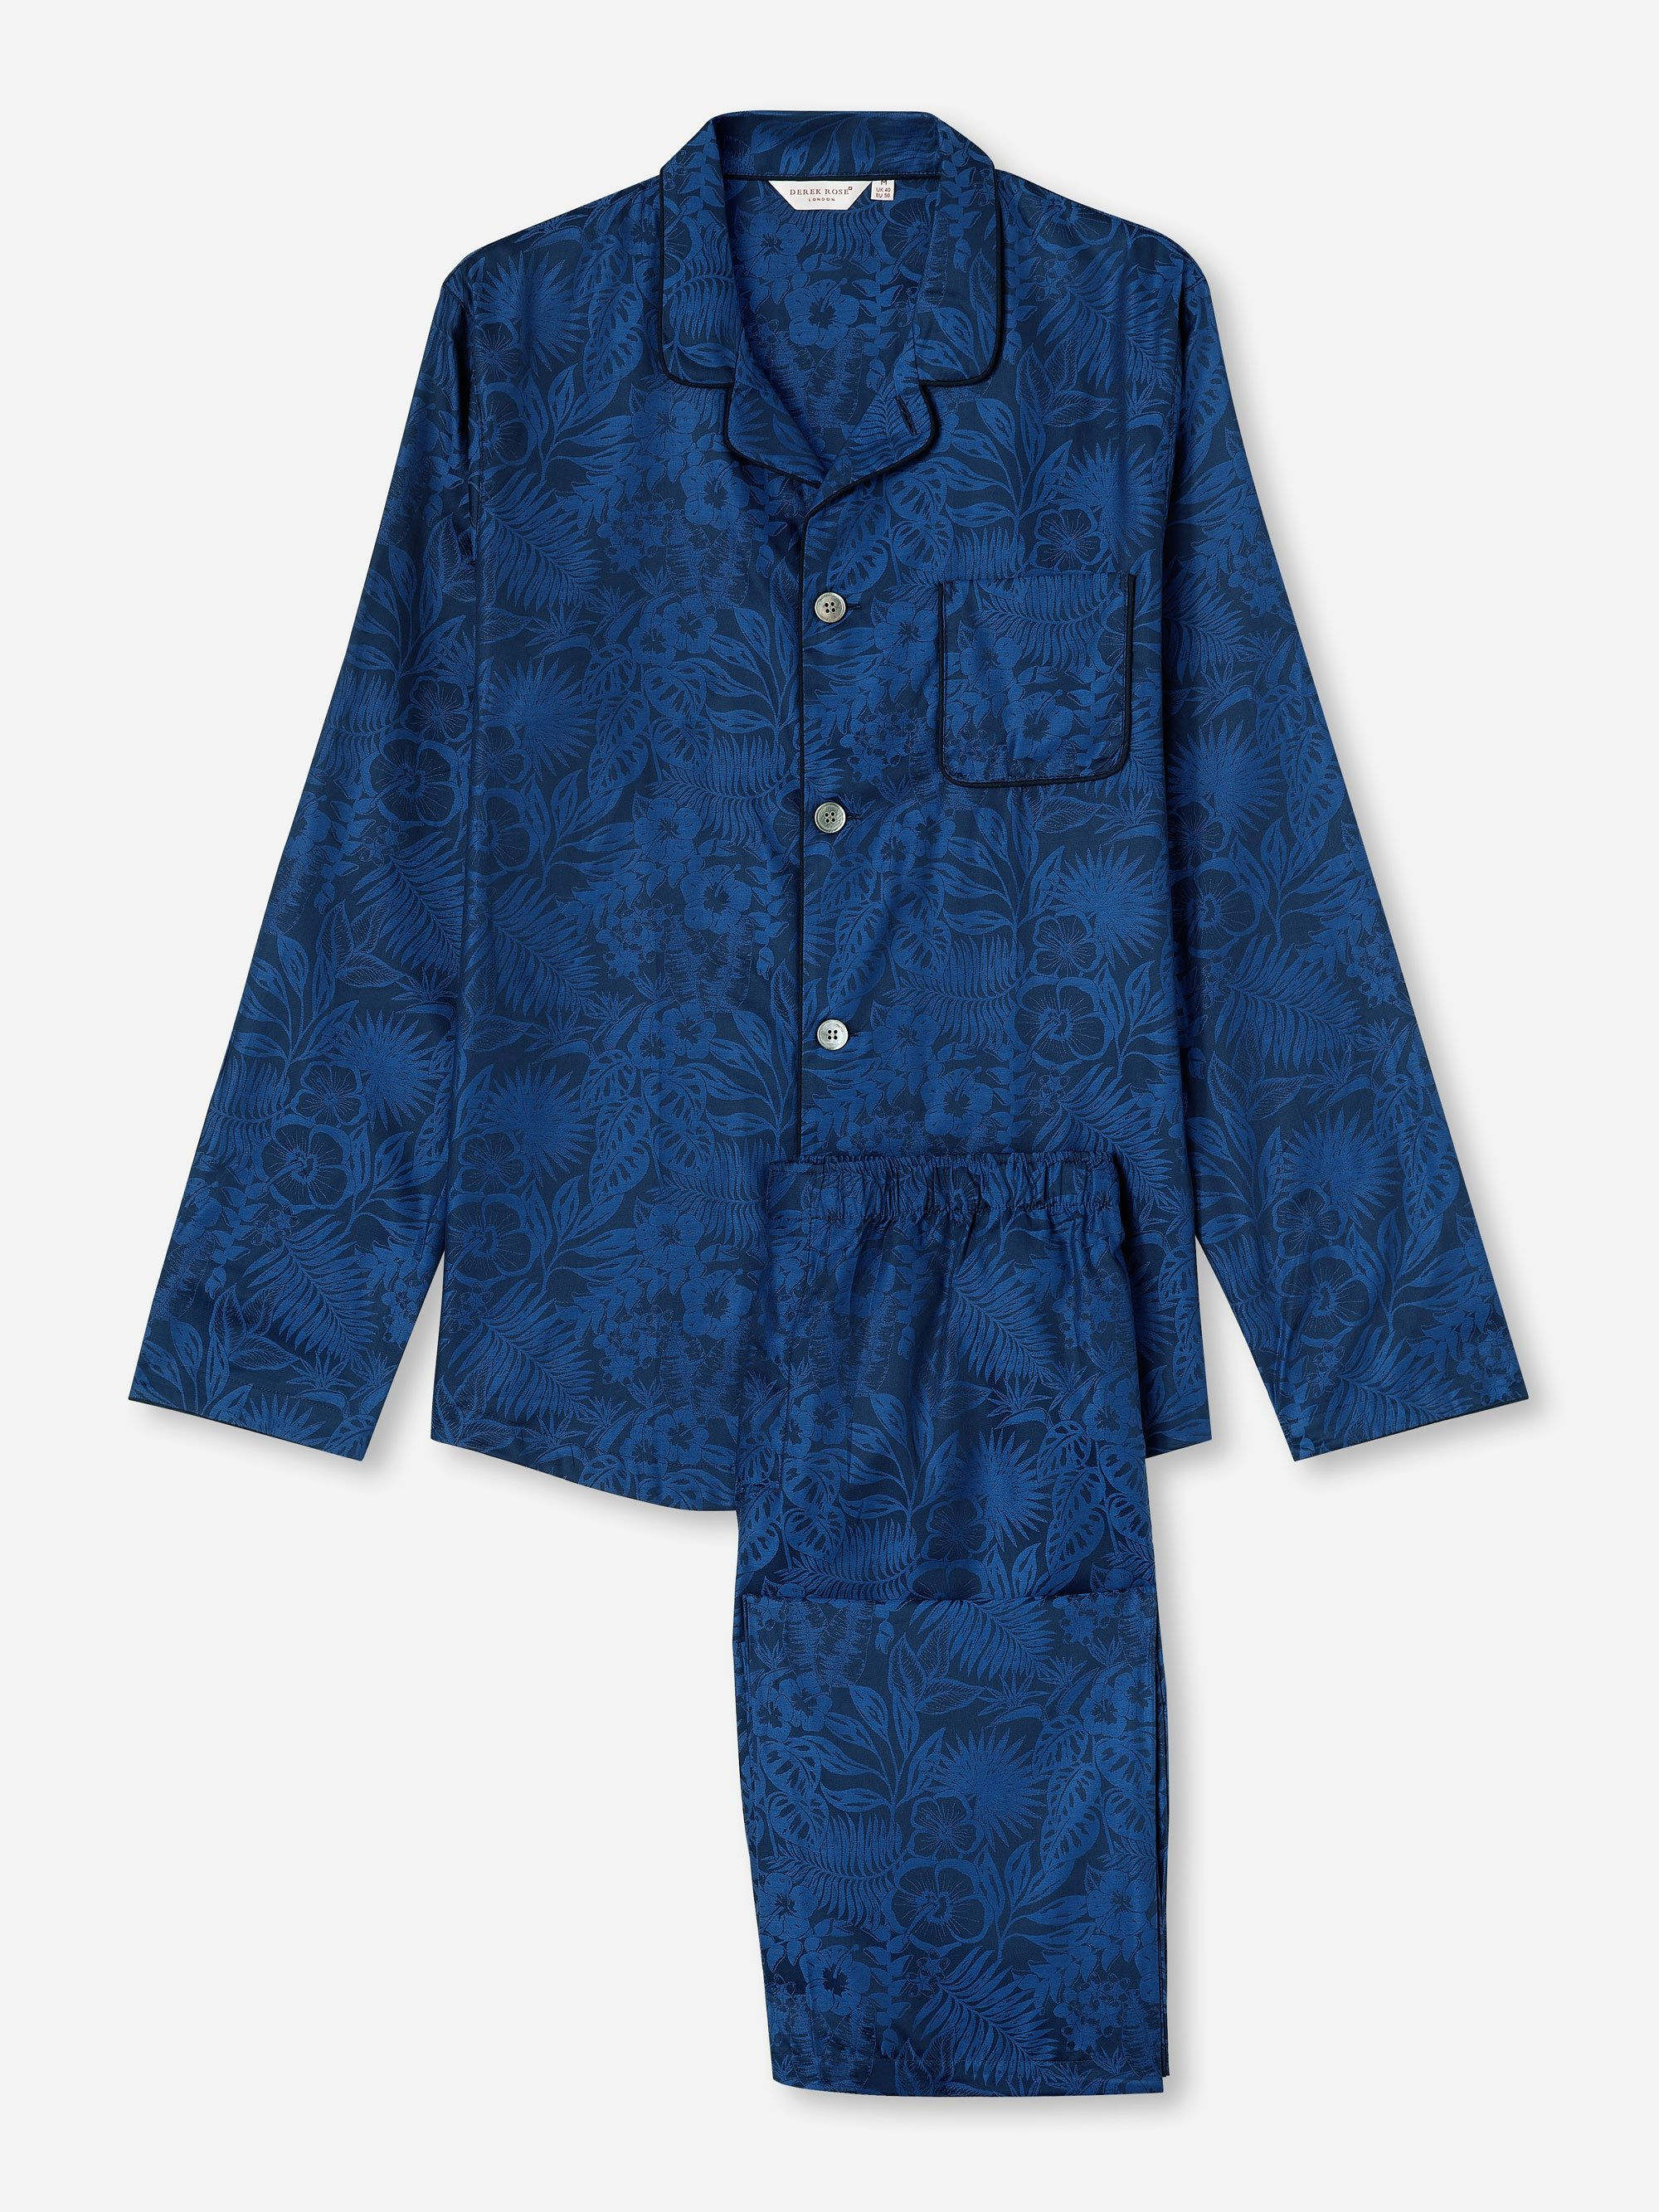 Men's Modern Fit Pyjamas Paris 19 Cotton Jacquard Navy